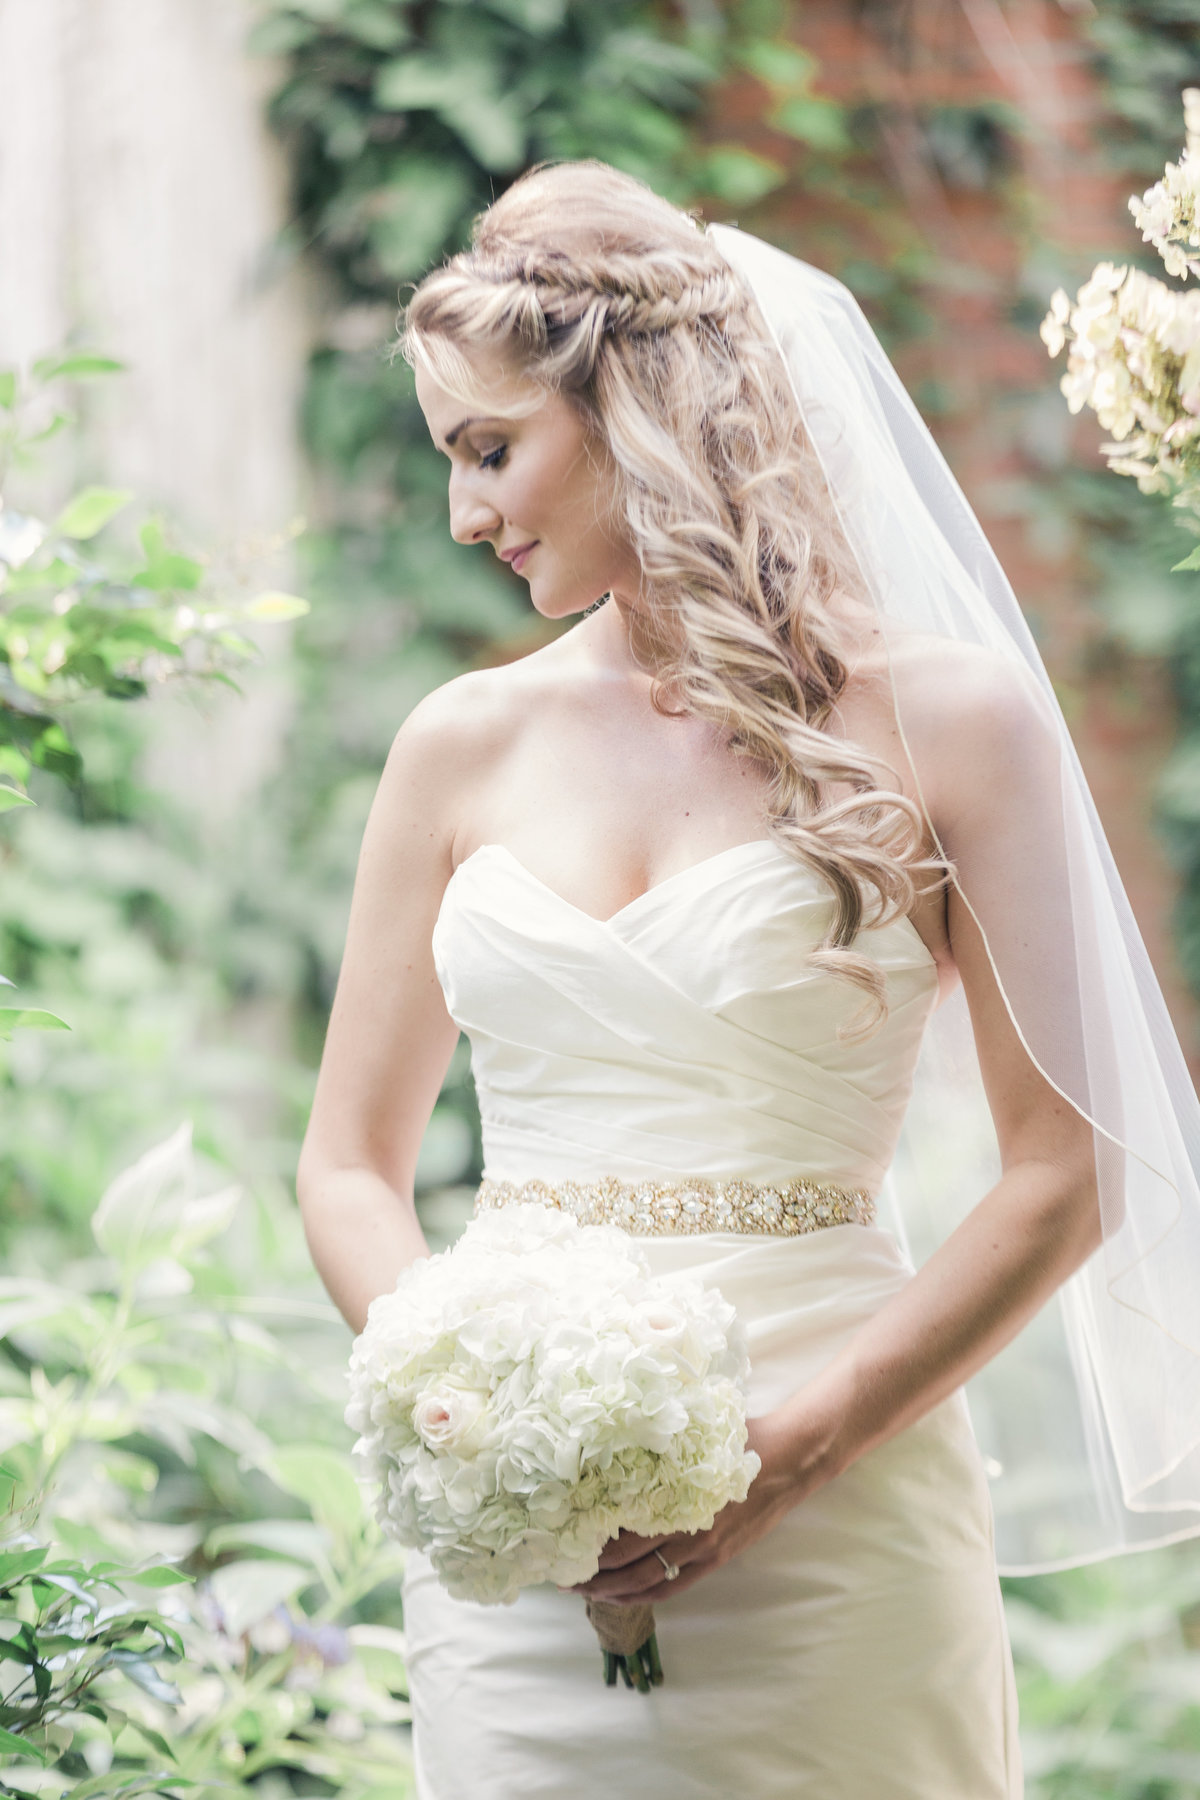 Bridal session with Charlotte wedding photographer Jamie Lucido at the Morehead Inn, with beautiful bride and bouquet